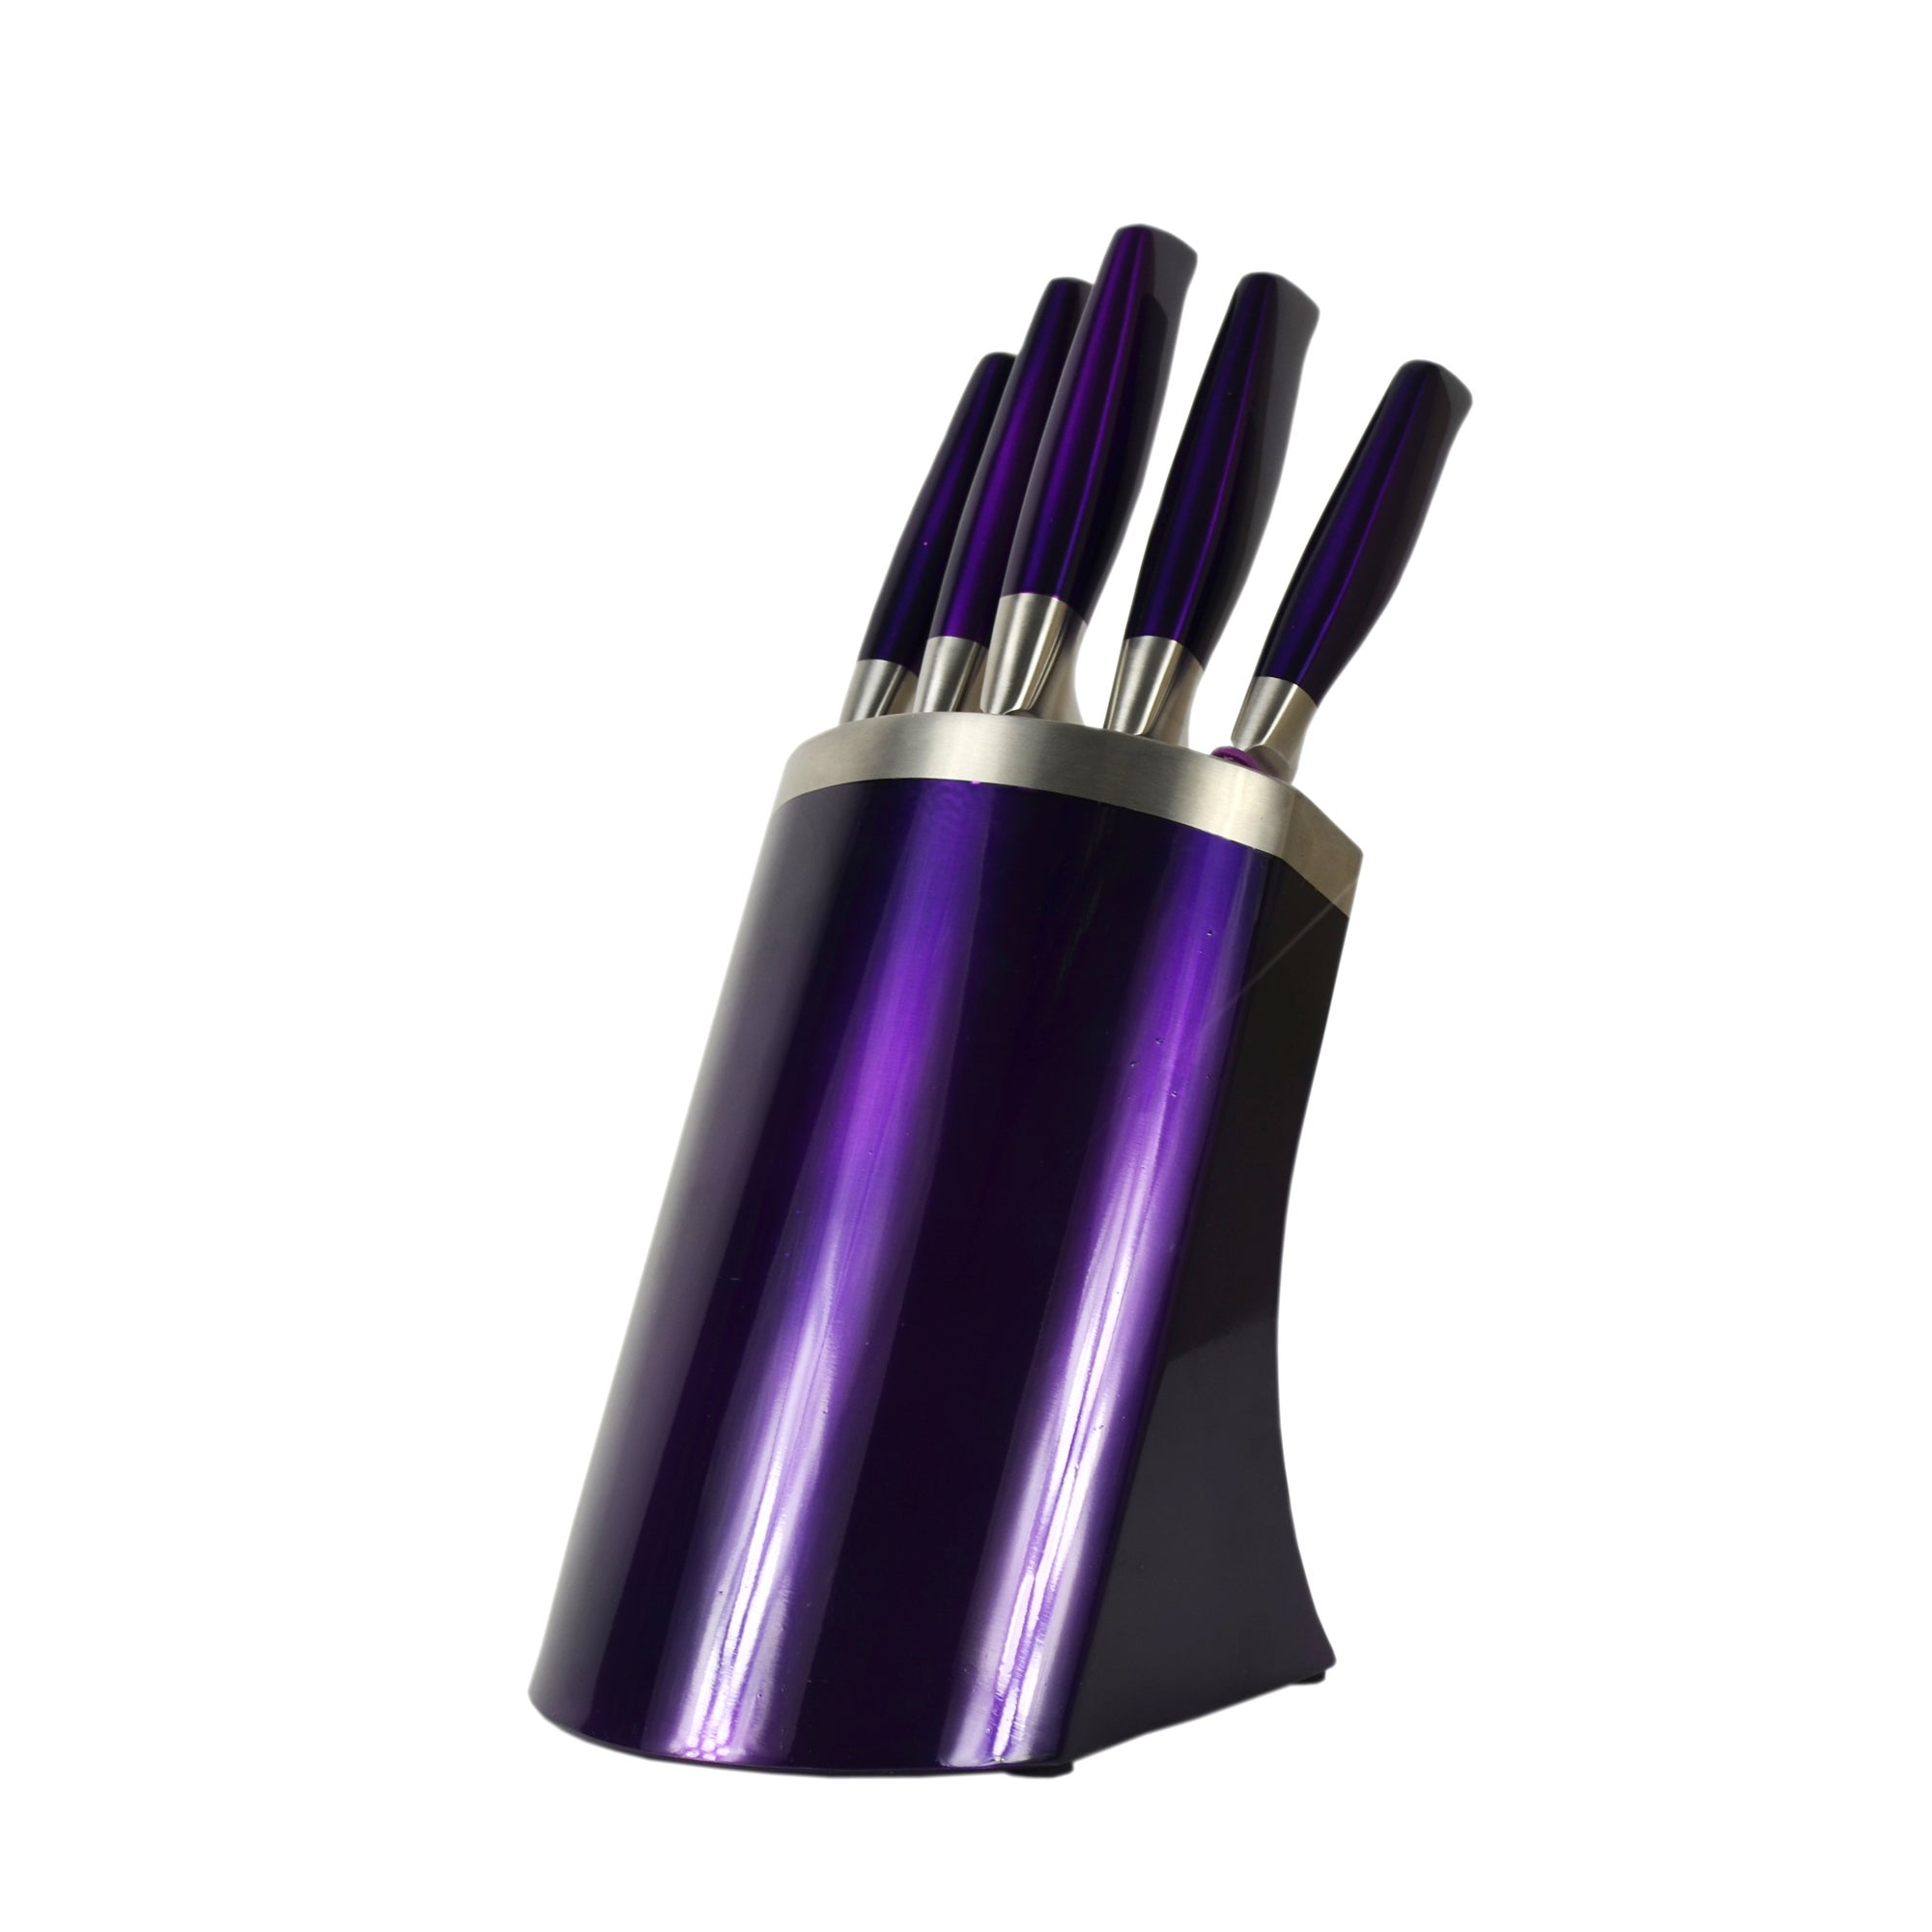 Purple Spectrum Utensil Collection